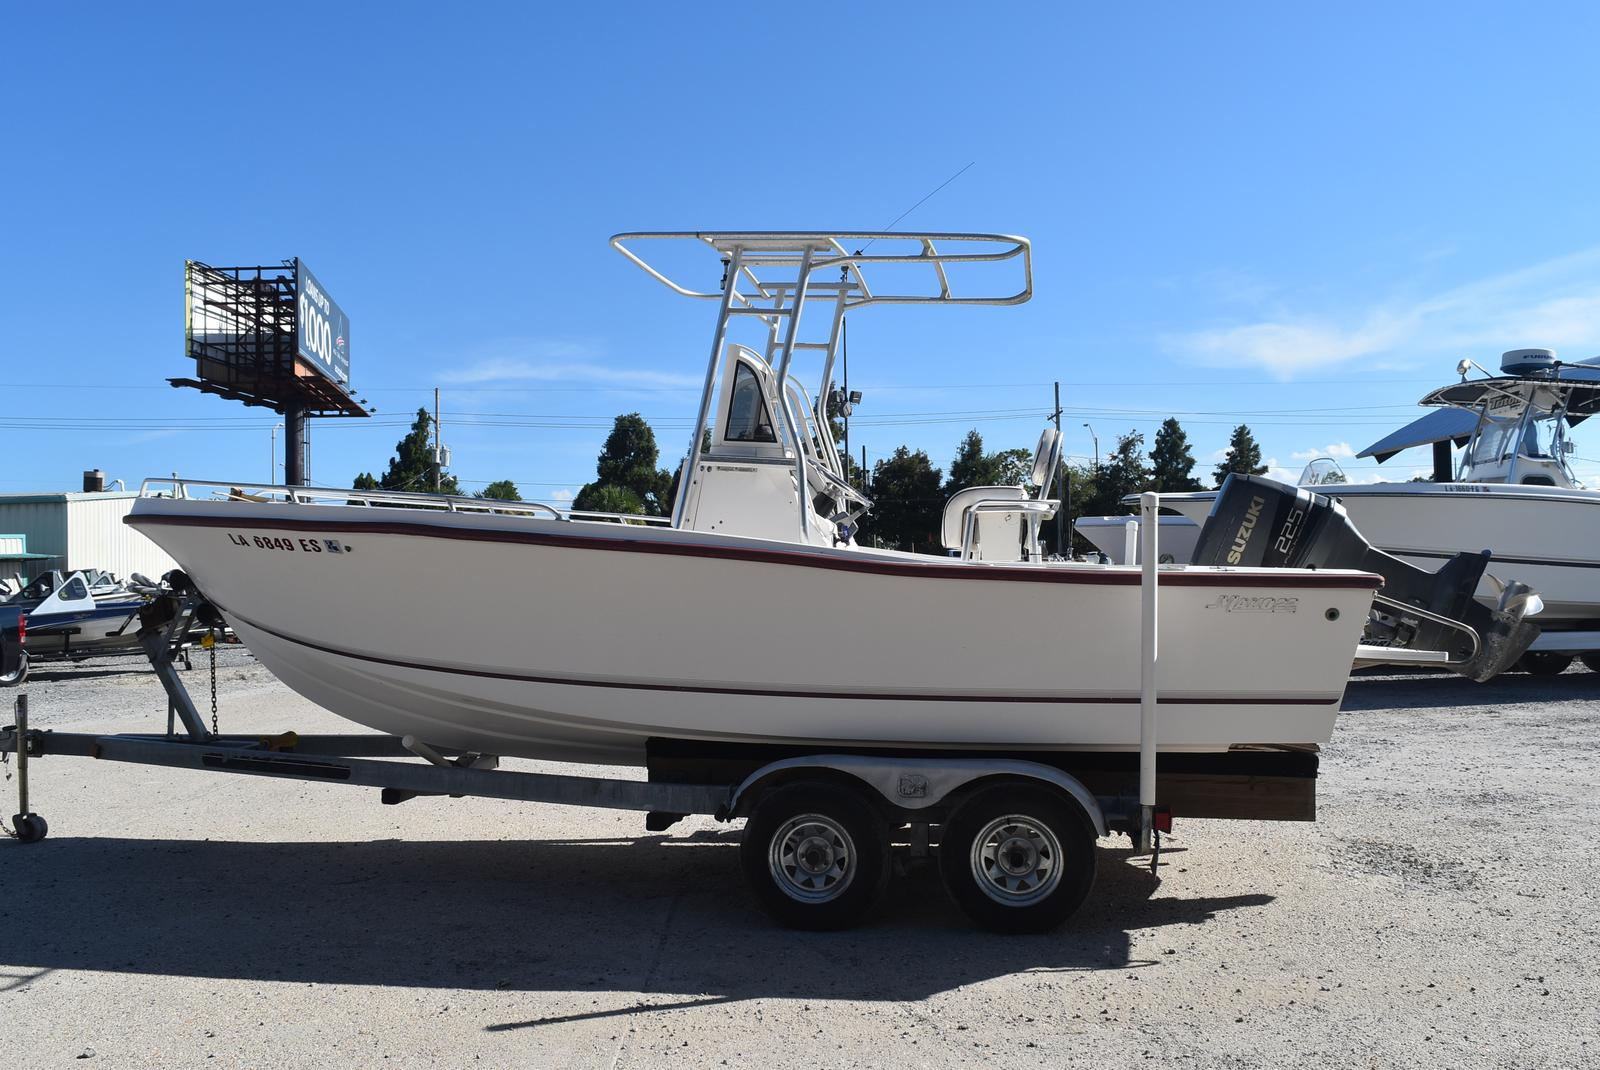 1996 Mako boat for sale, model of the boat is 22 Mako & Image # 16 of 26